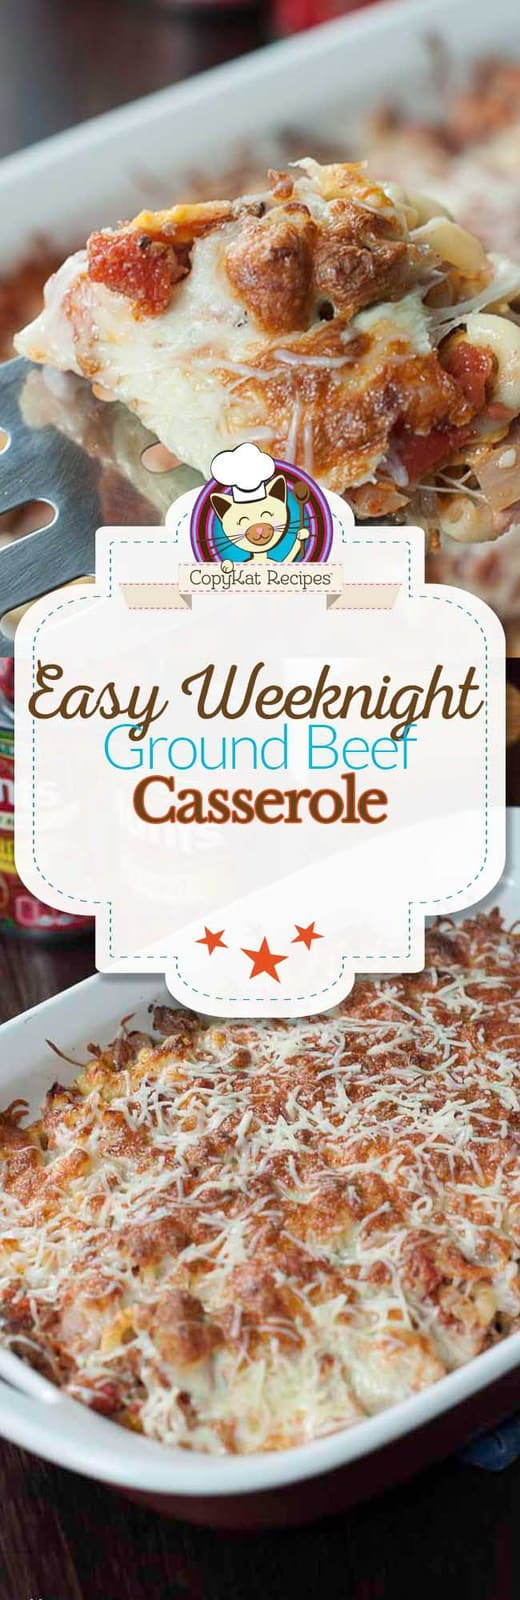 Make this easy Weeknight Ground Beef Casserole, it's super hearty, and delicious.  #AD #HuntsHolidayHappiness